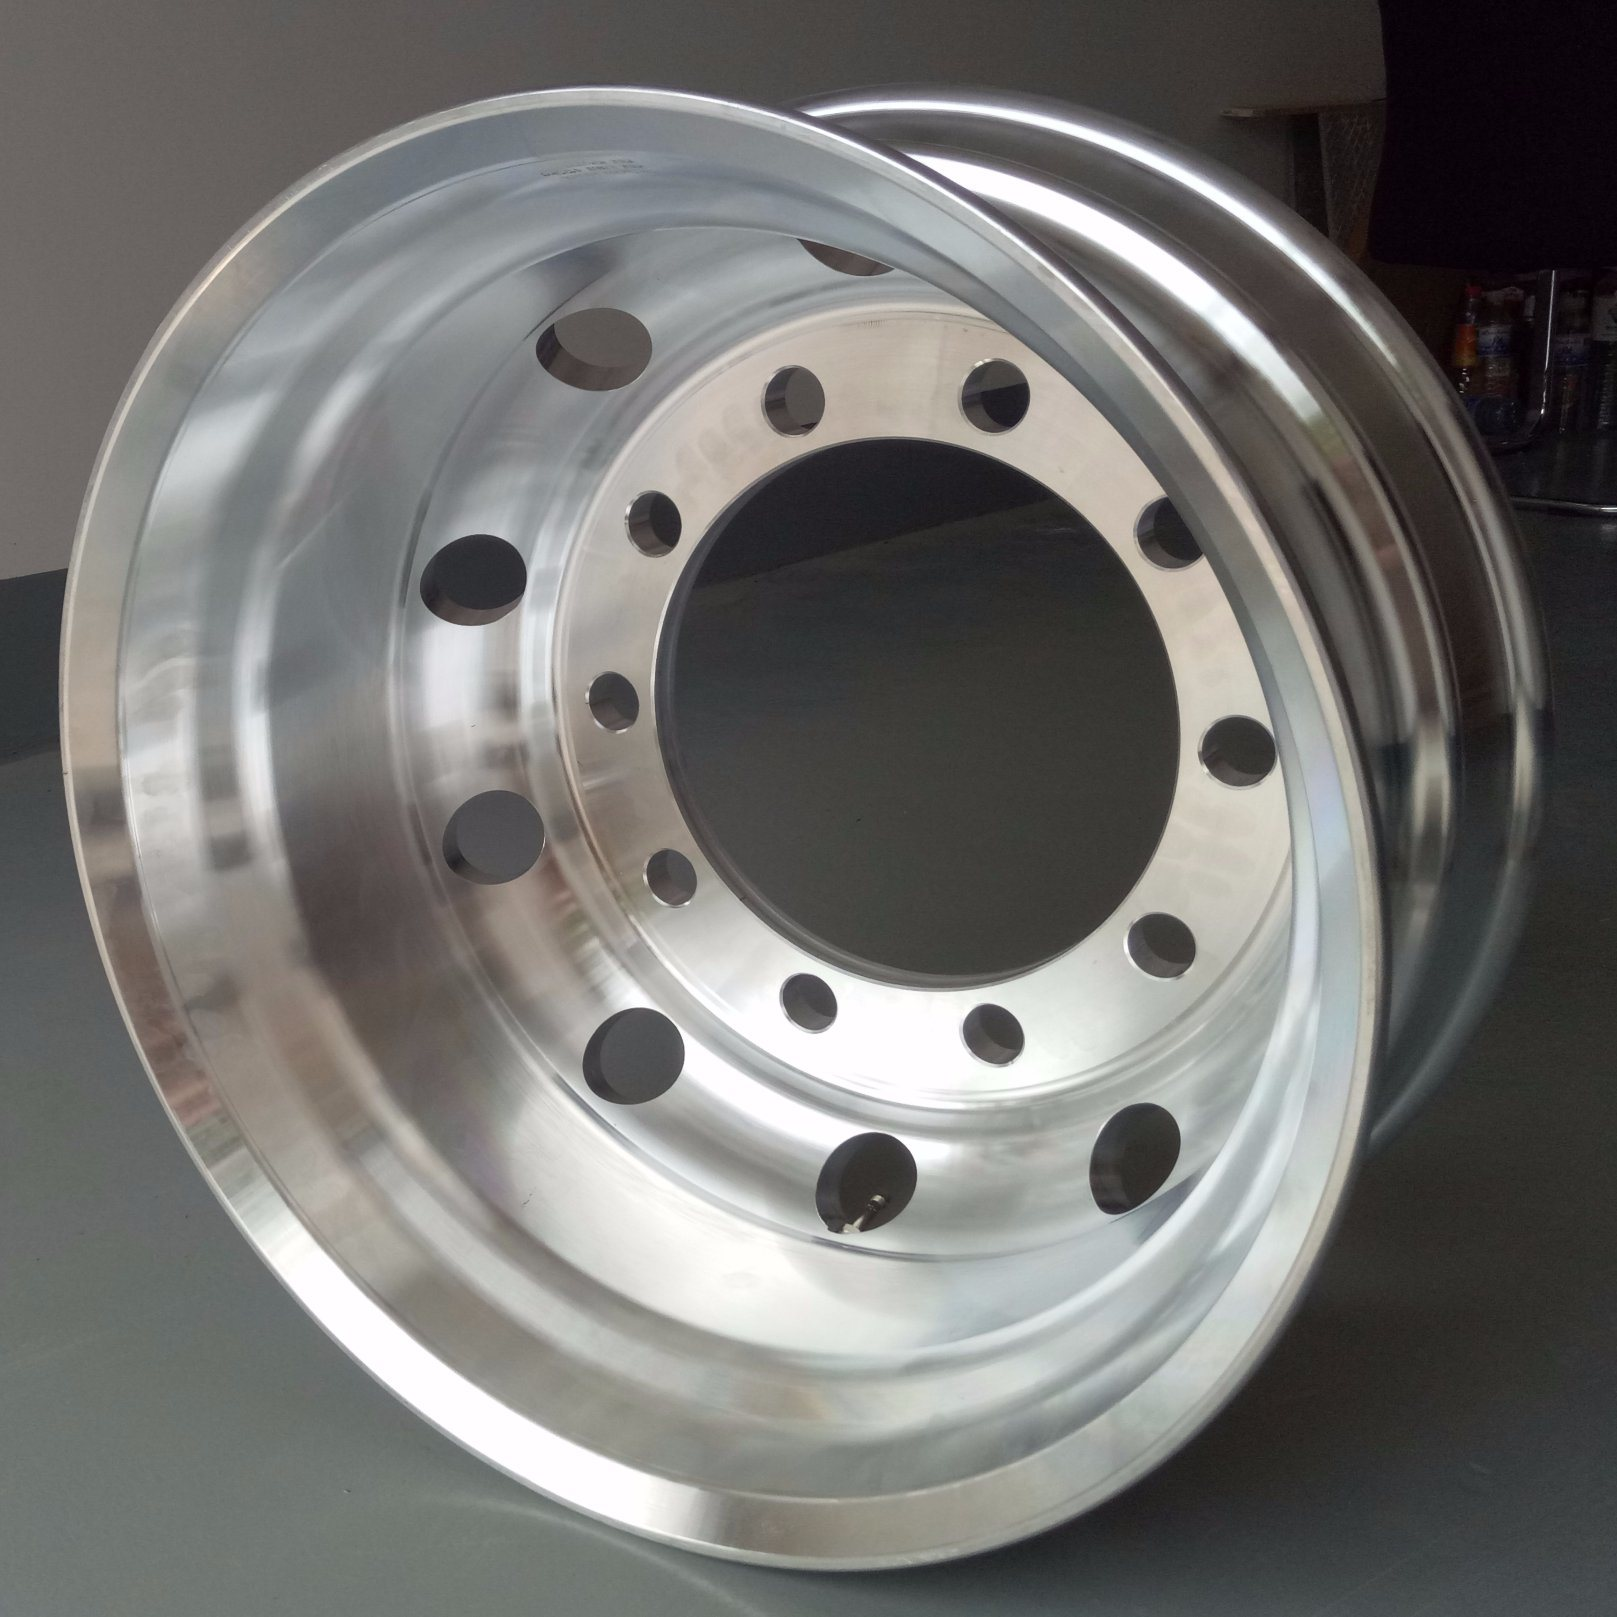 Aluminium Alloy Truck Wheel Rims/Forged Alloy Wheels/Manufacturer Factory (22.5*9.00 8.25)